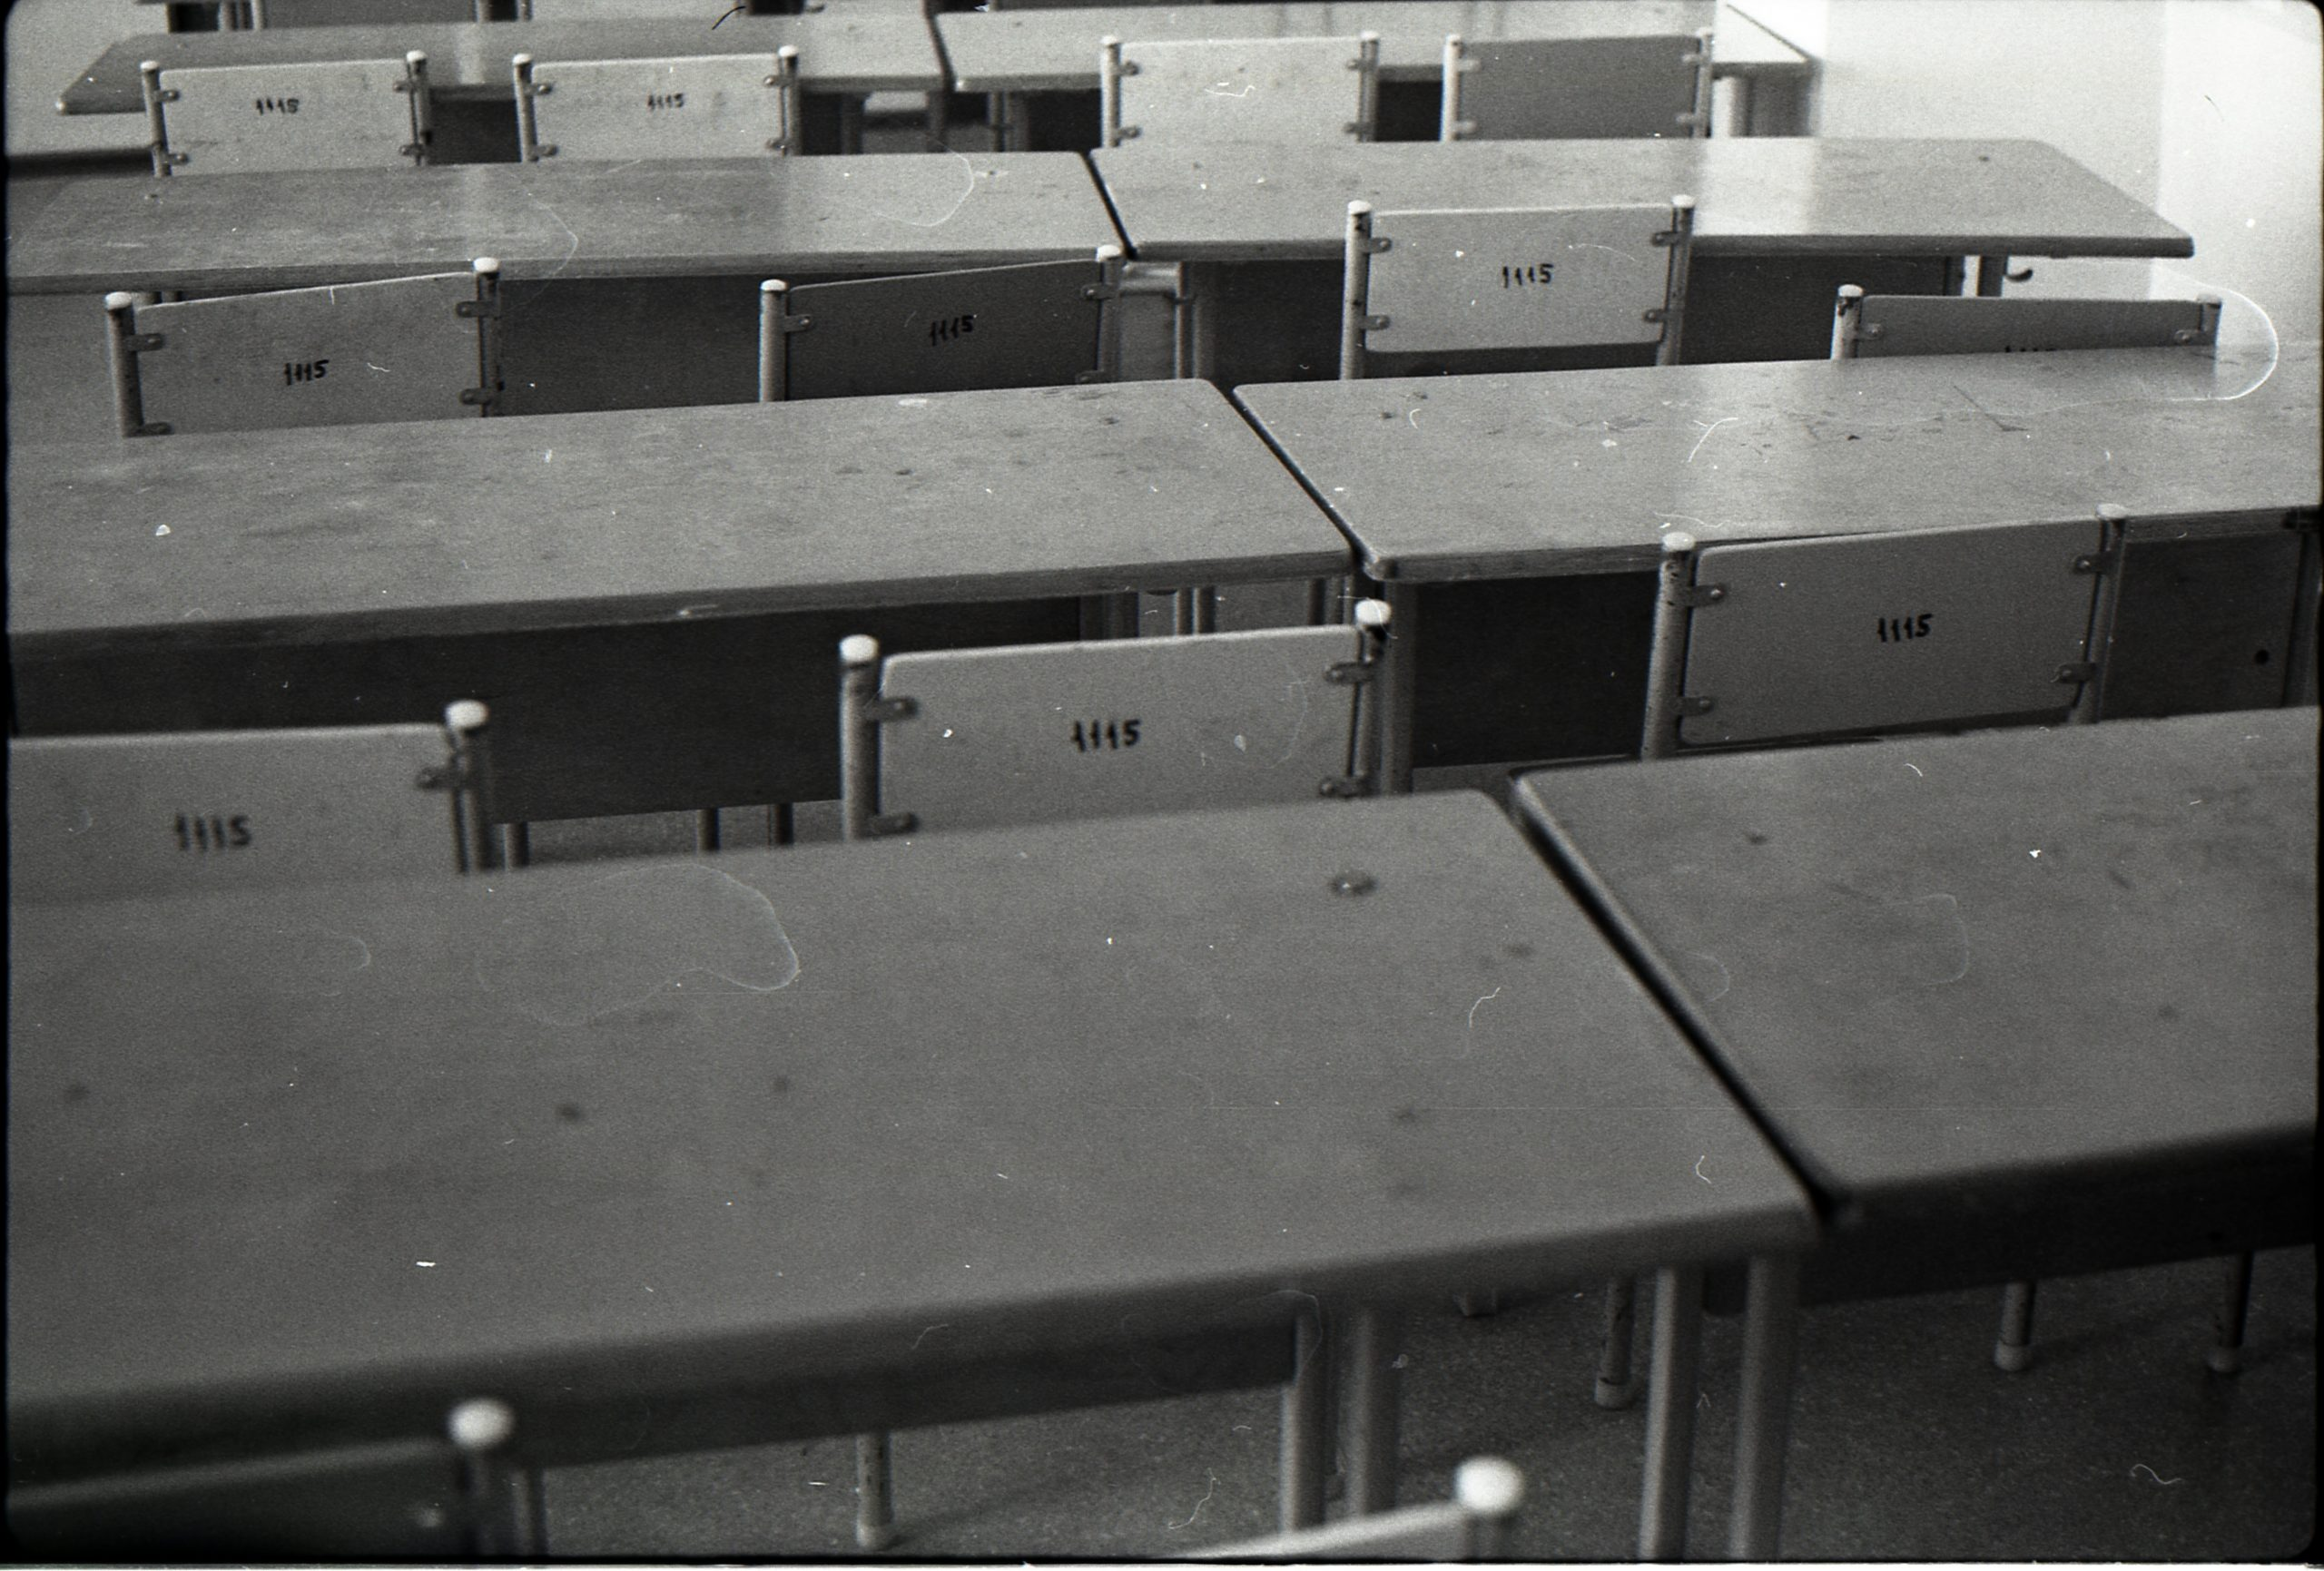 A row of desks in a classroom.